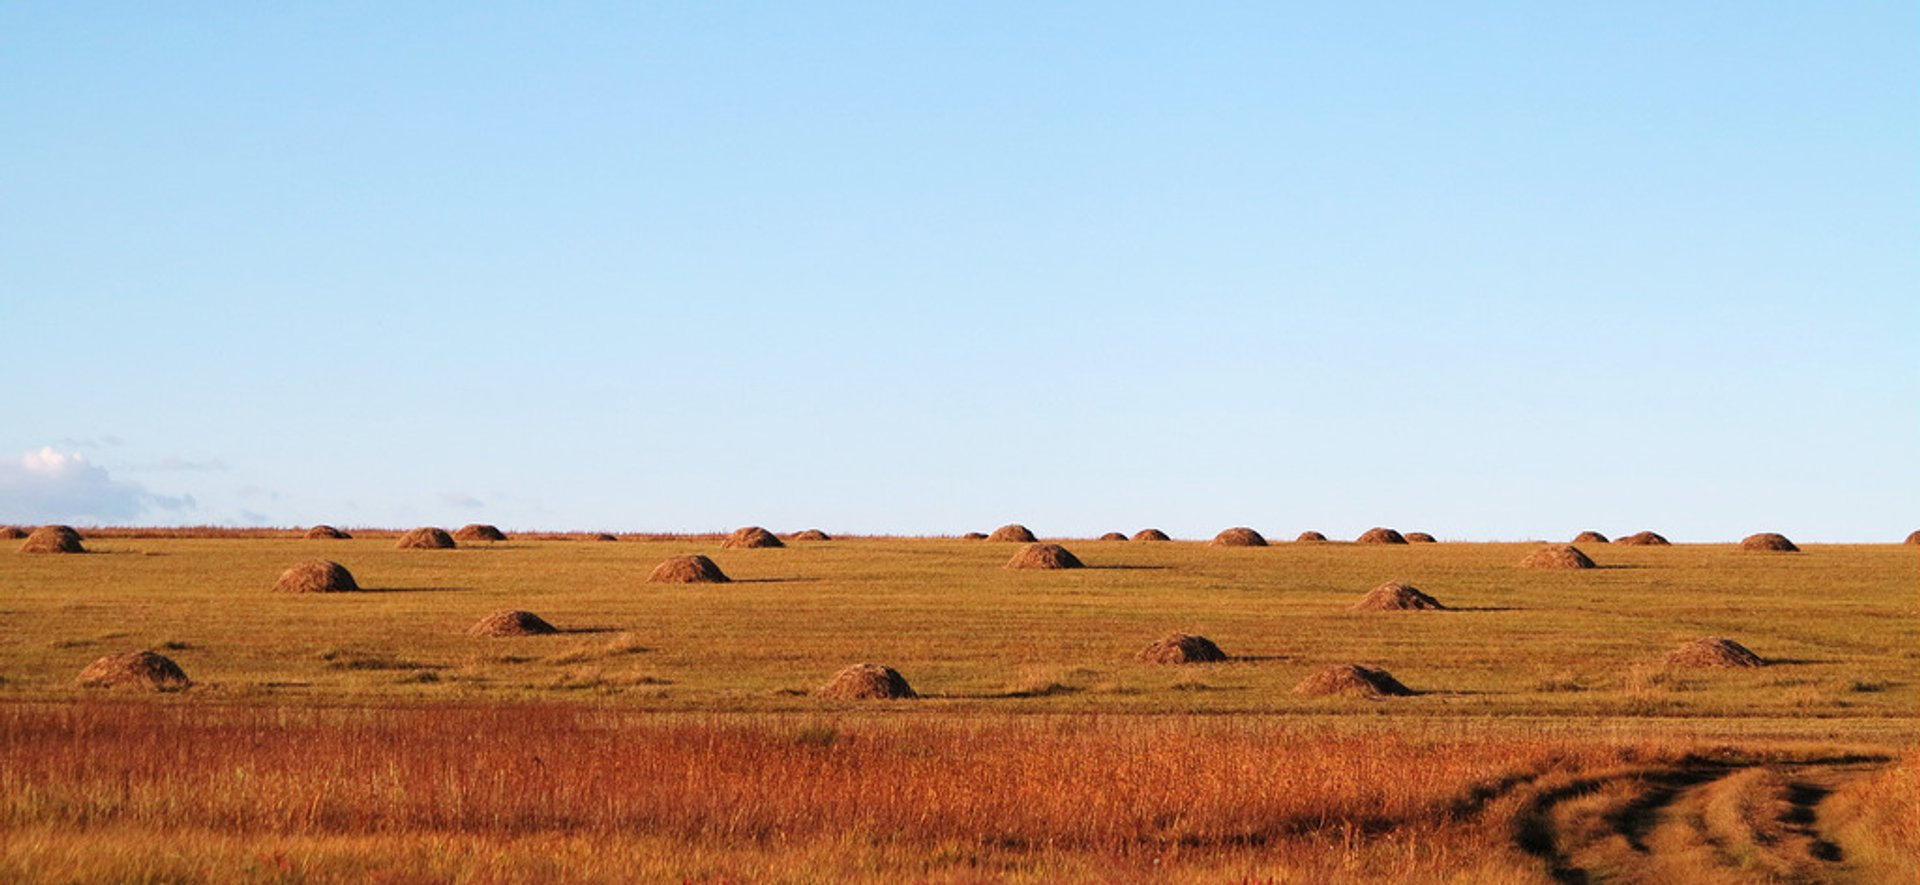 Hay Harvest in Mongolia 2019 - Best Time